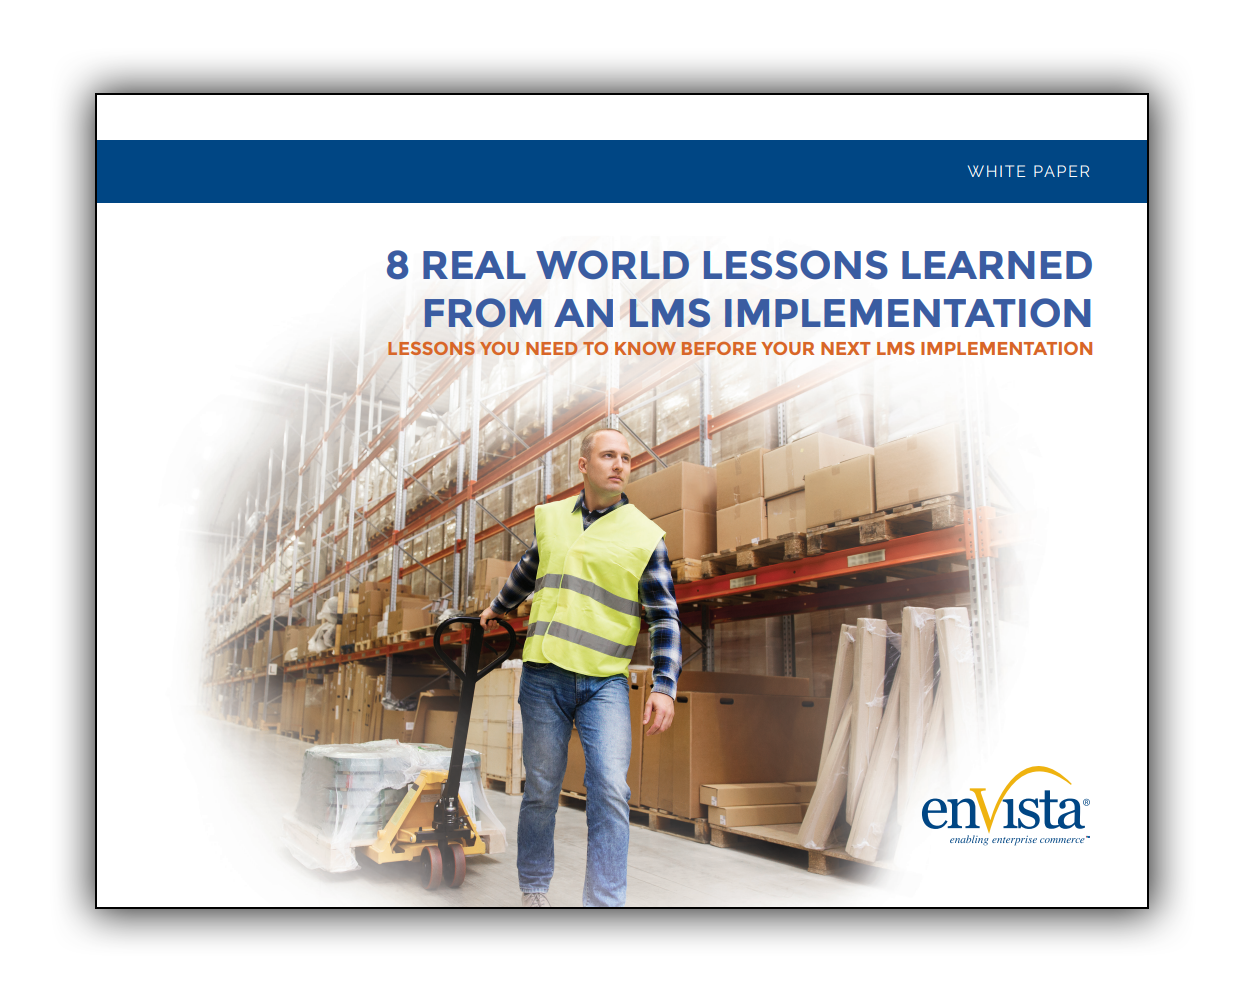 Image_8-real-world-lessons-learned-from-an-LMS-implementation.png